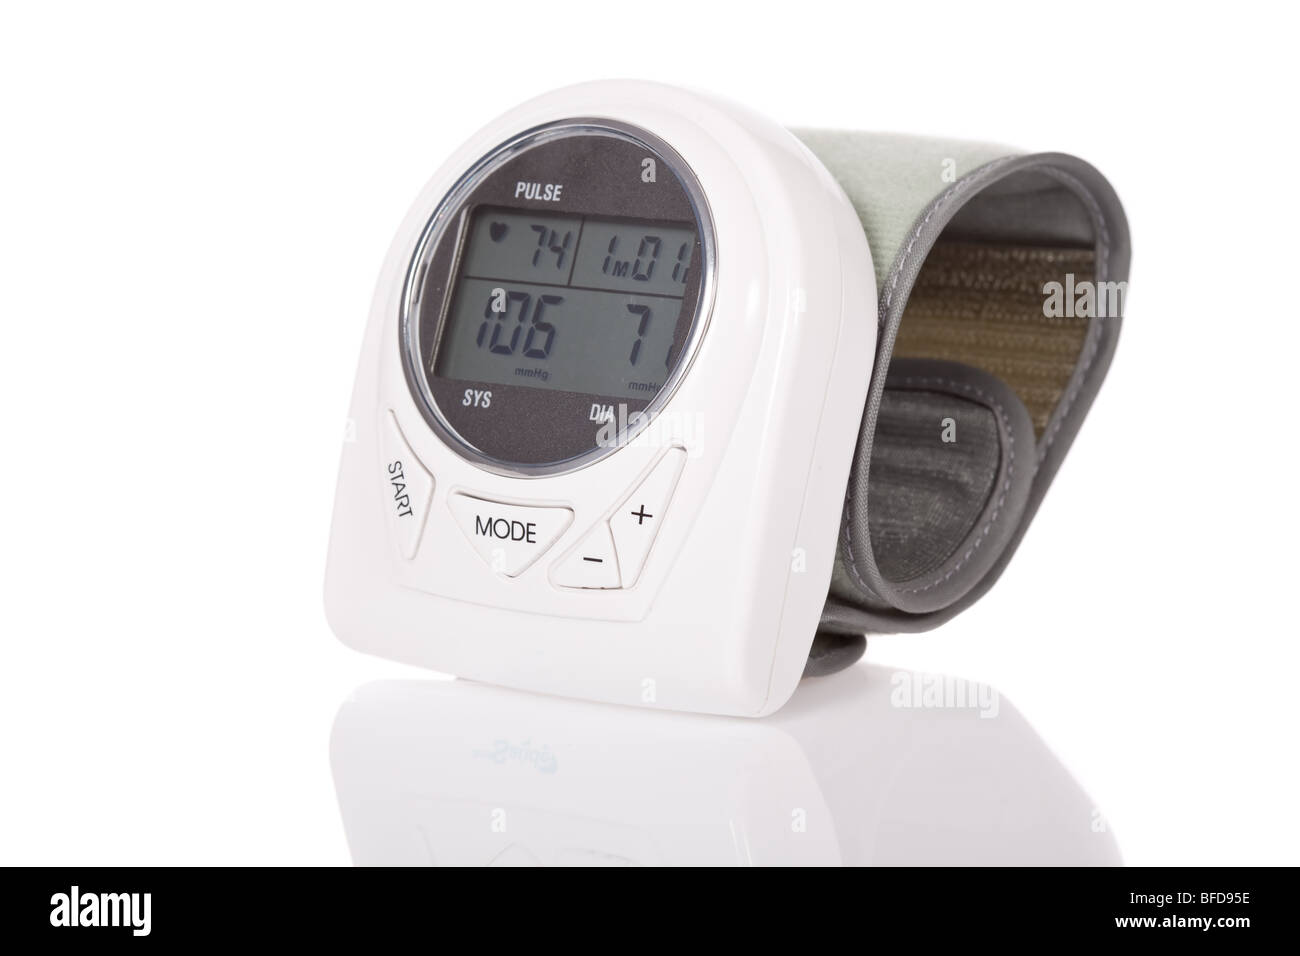 Wrist sphygmomanometer (blood pressure measure equipment) isolated on white background - Stock Image